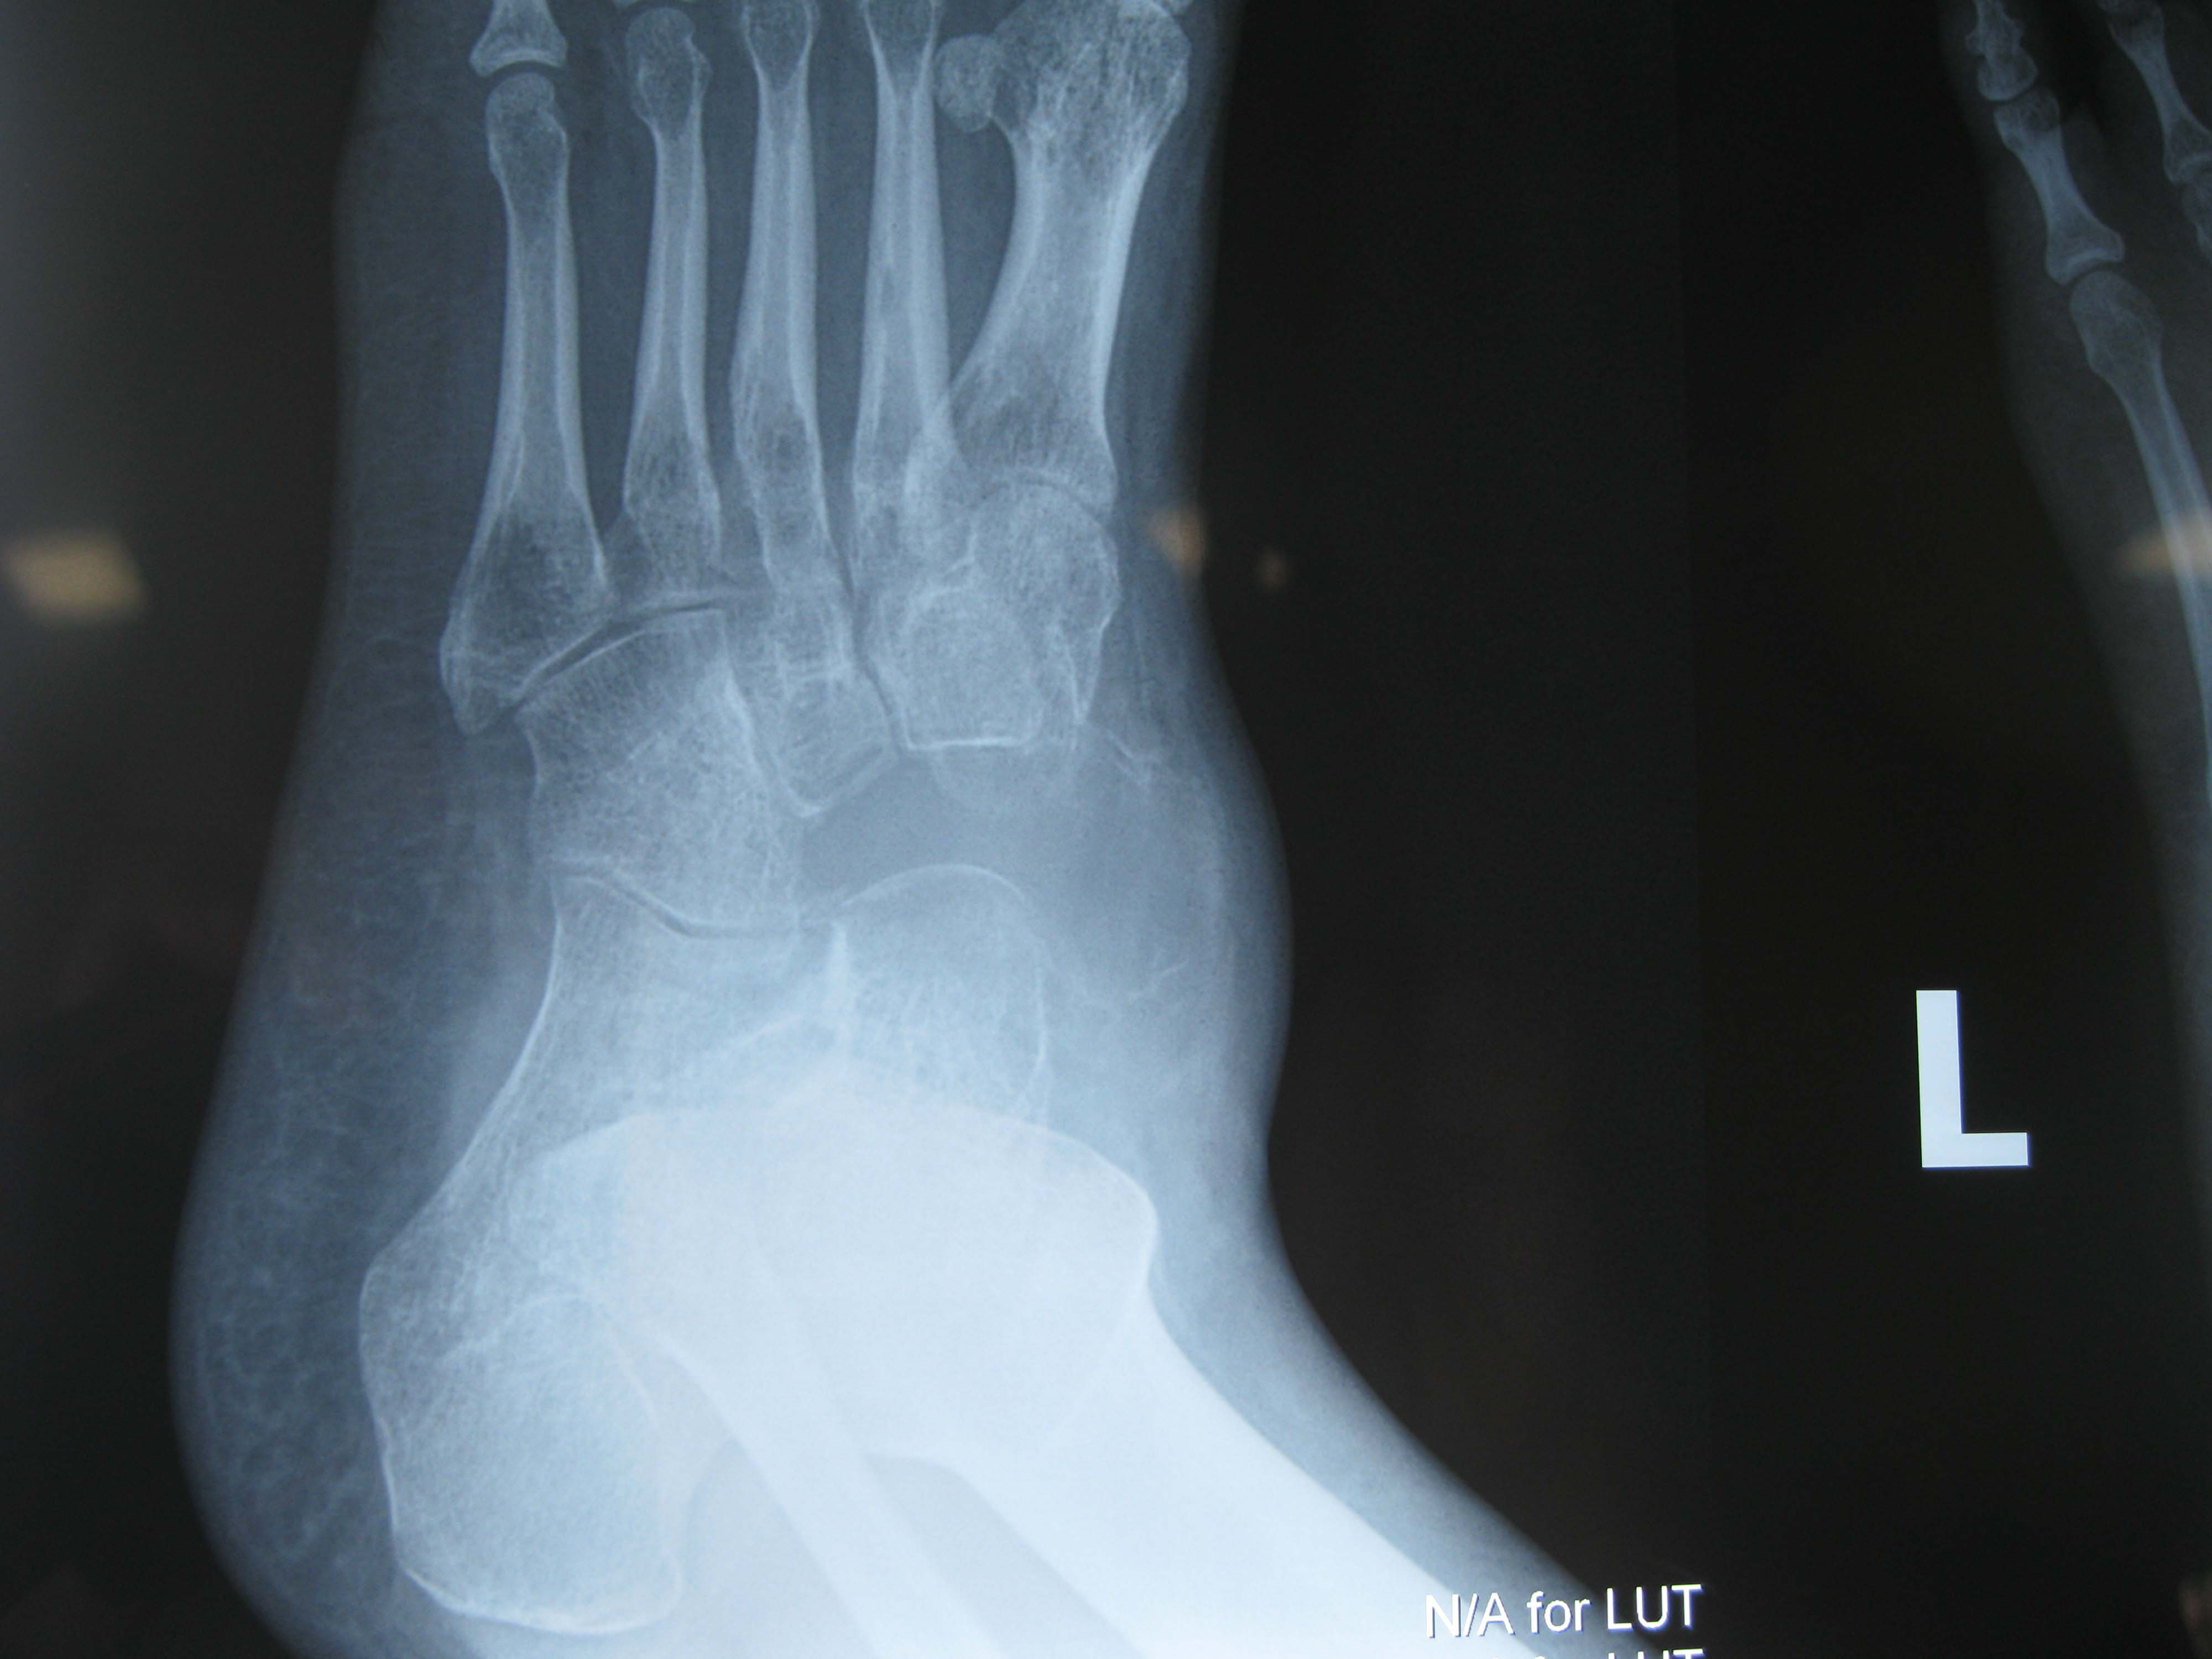 pre operative cyst at navicular